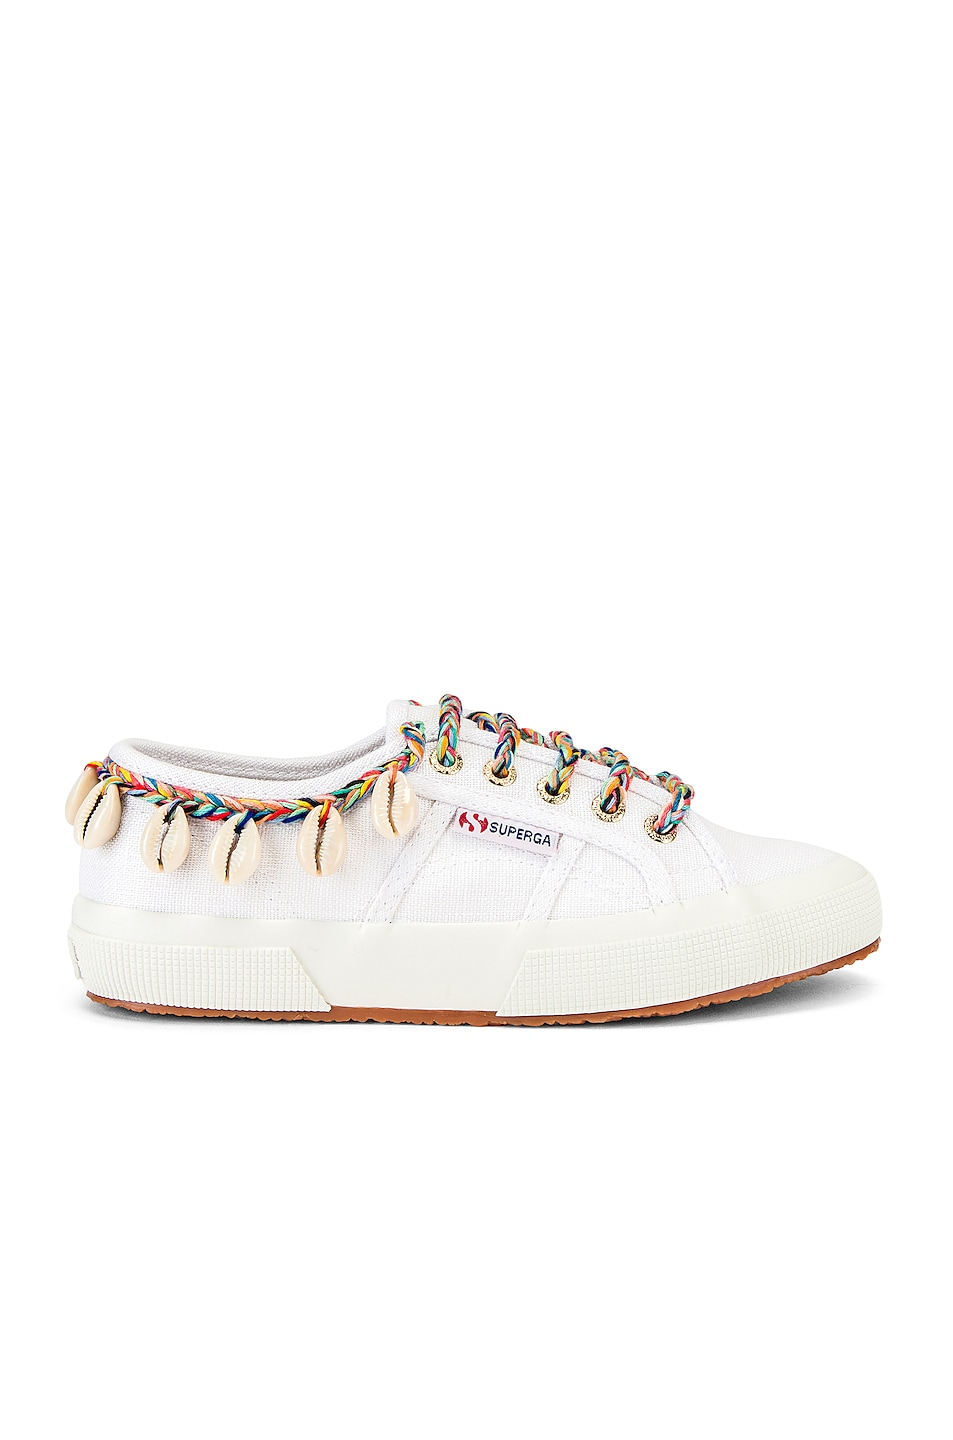 Image 1 of ALANUI x SUPERGA Low Top Cowrie Shells Sneaker in White Multi